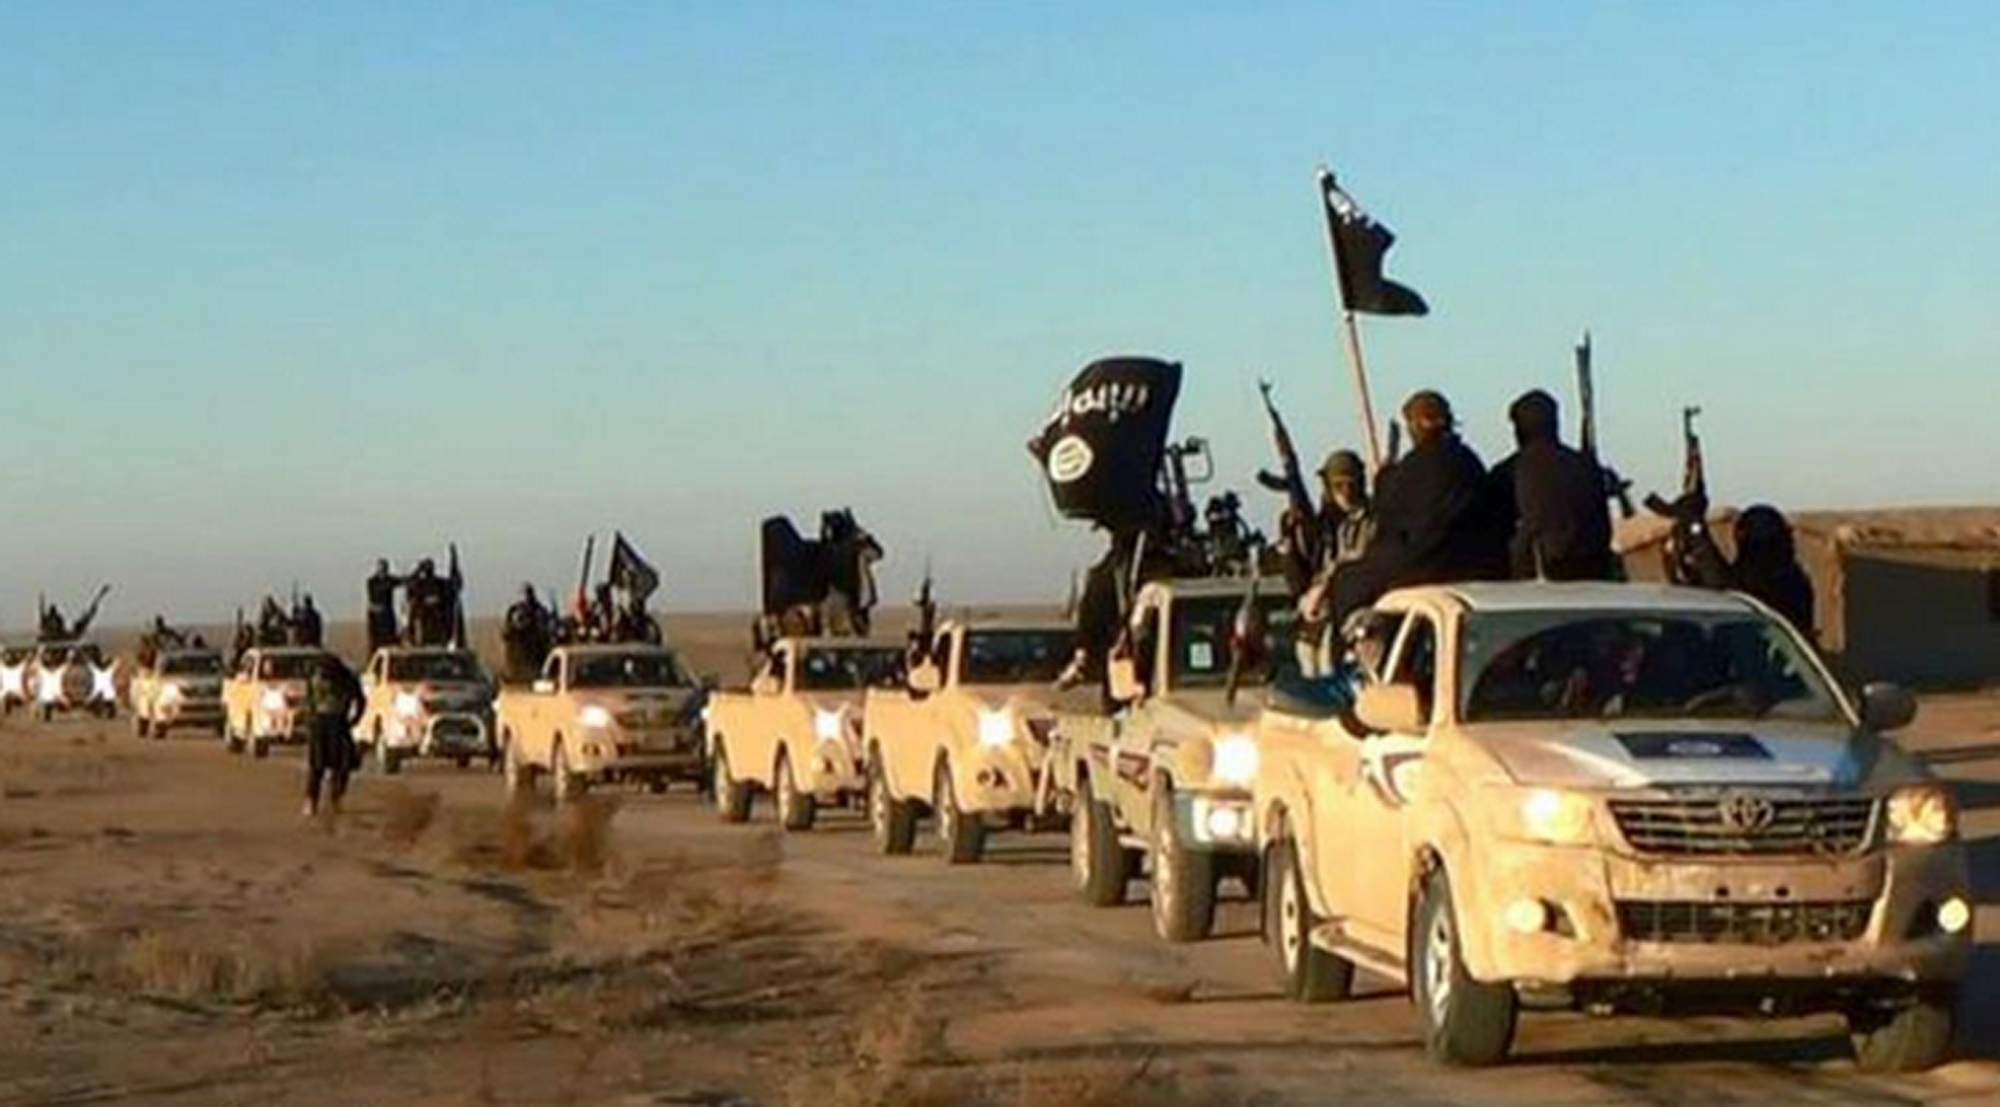 Islamic State Preying On Ignorance